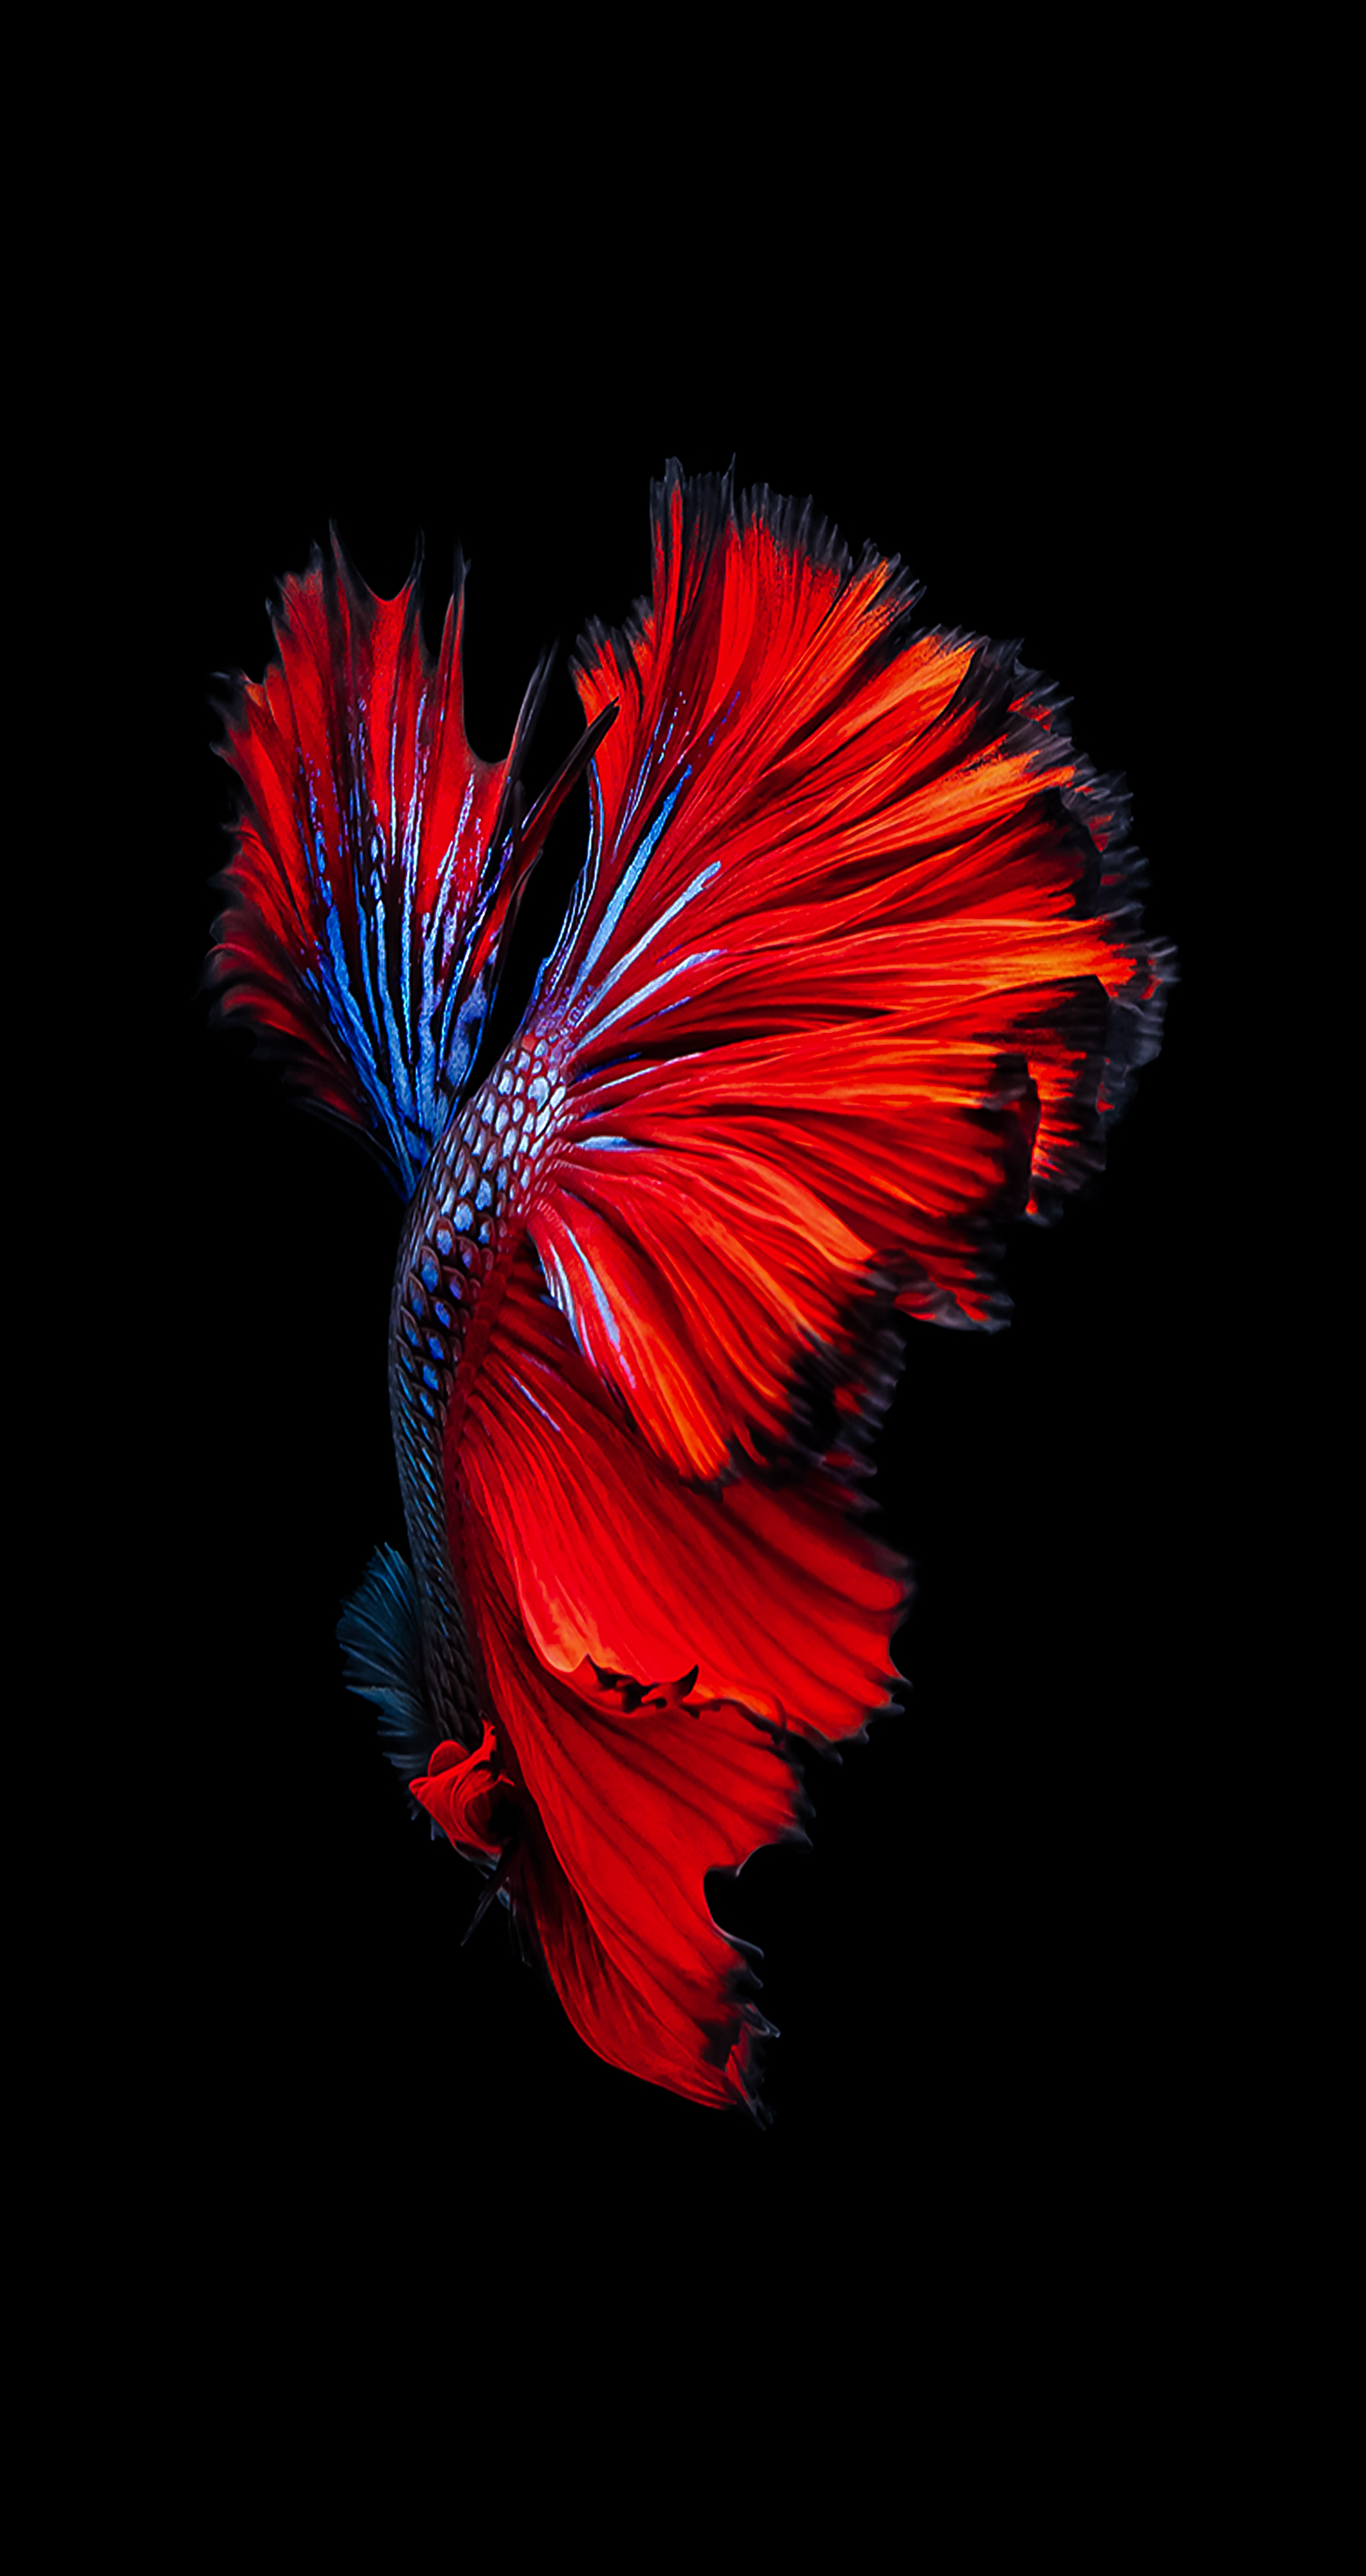 Related image Iphone wallpaper ios, Fish wallpaper